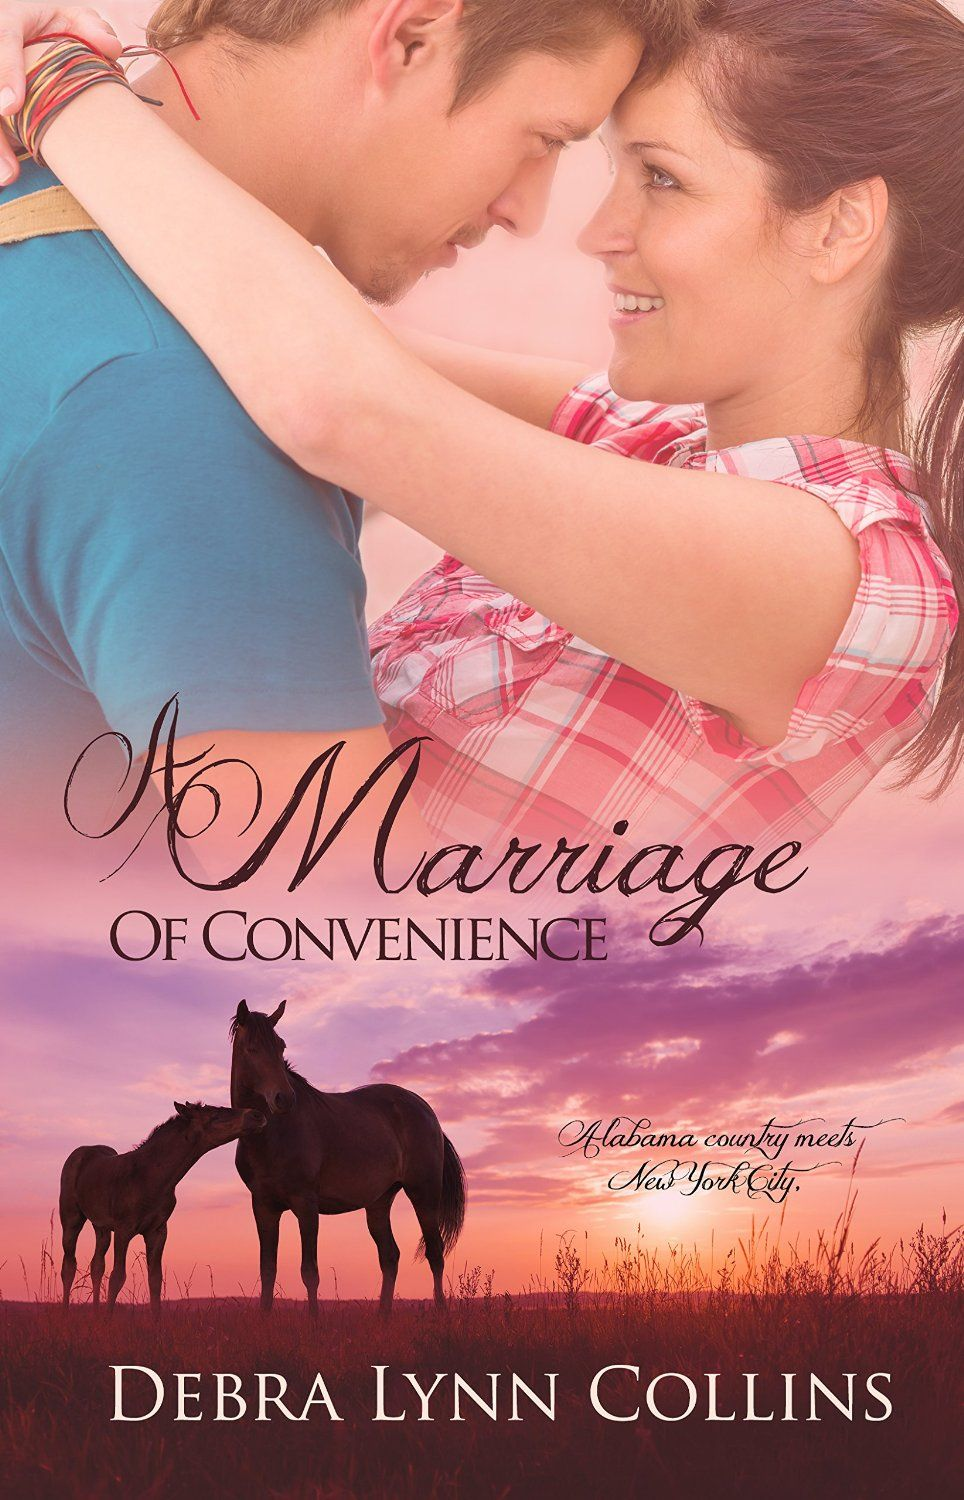 16+ Christian marriage relationship books ideas